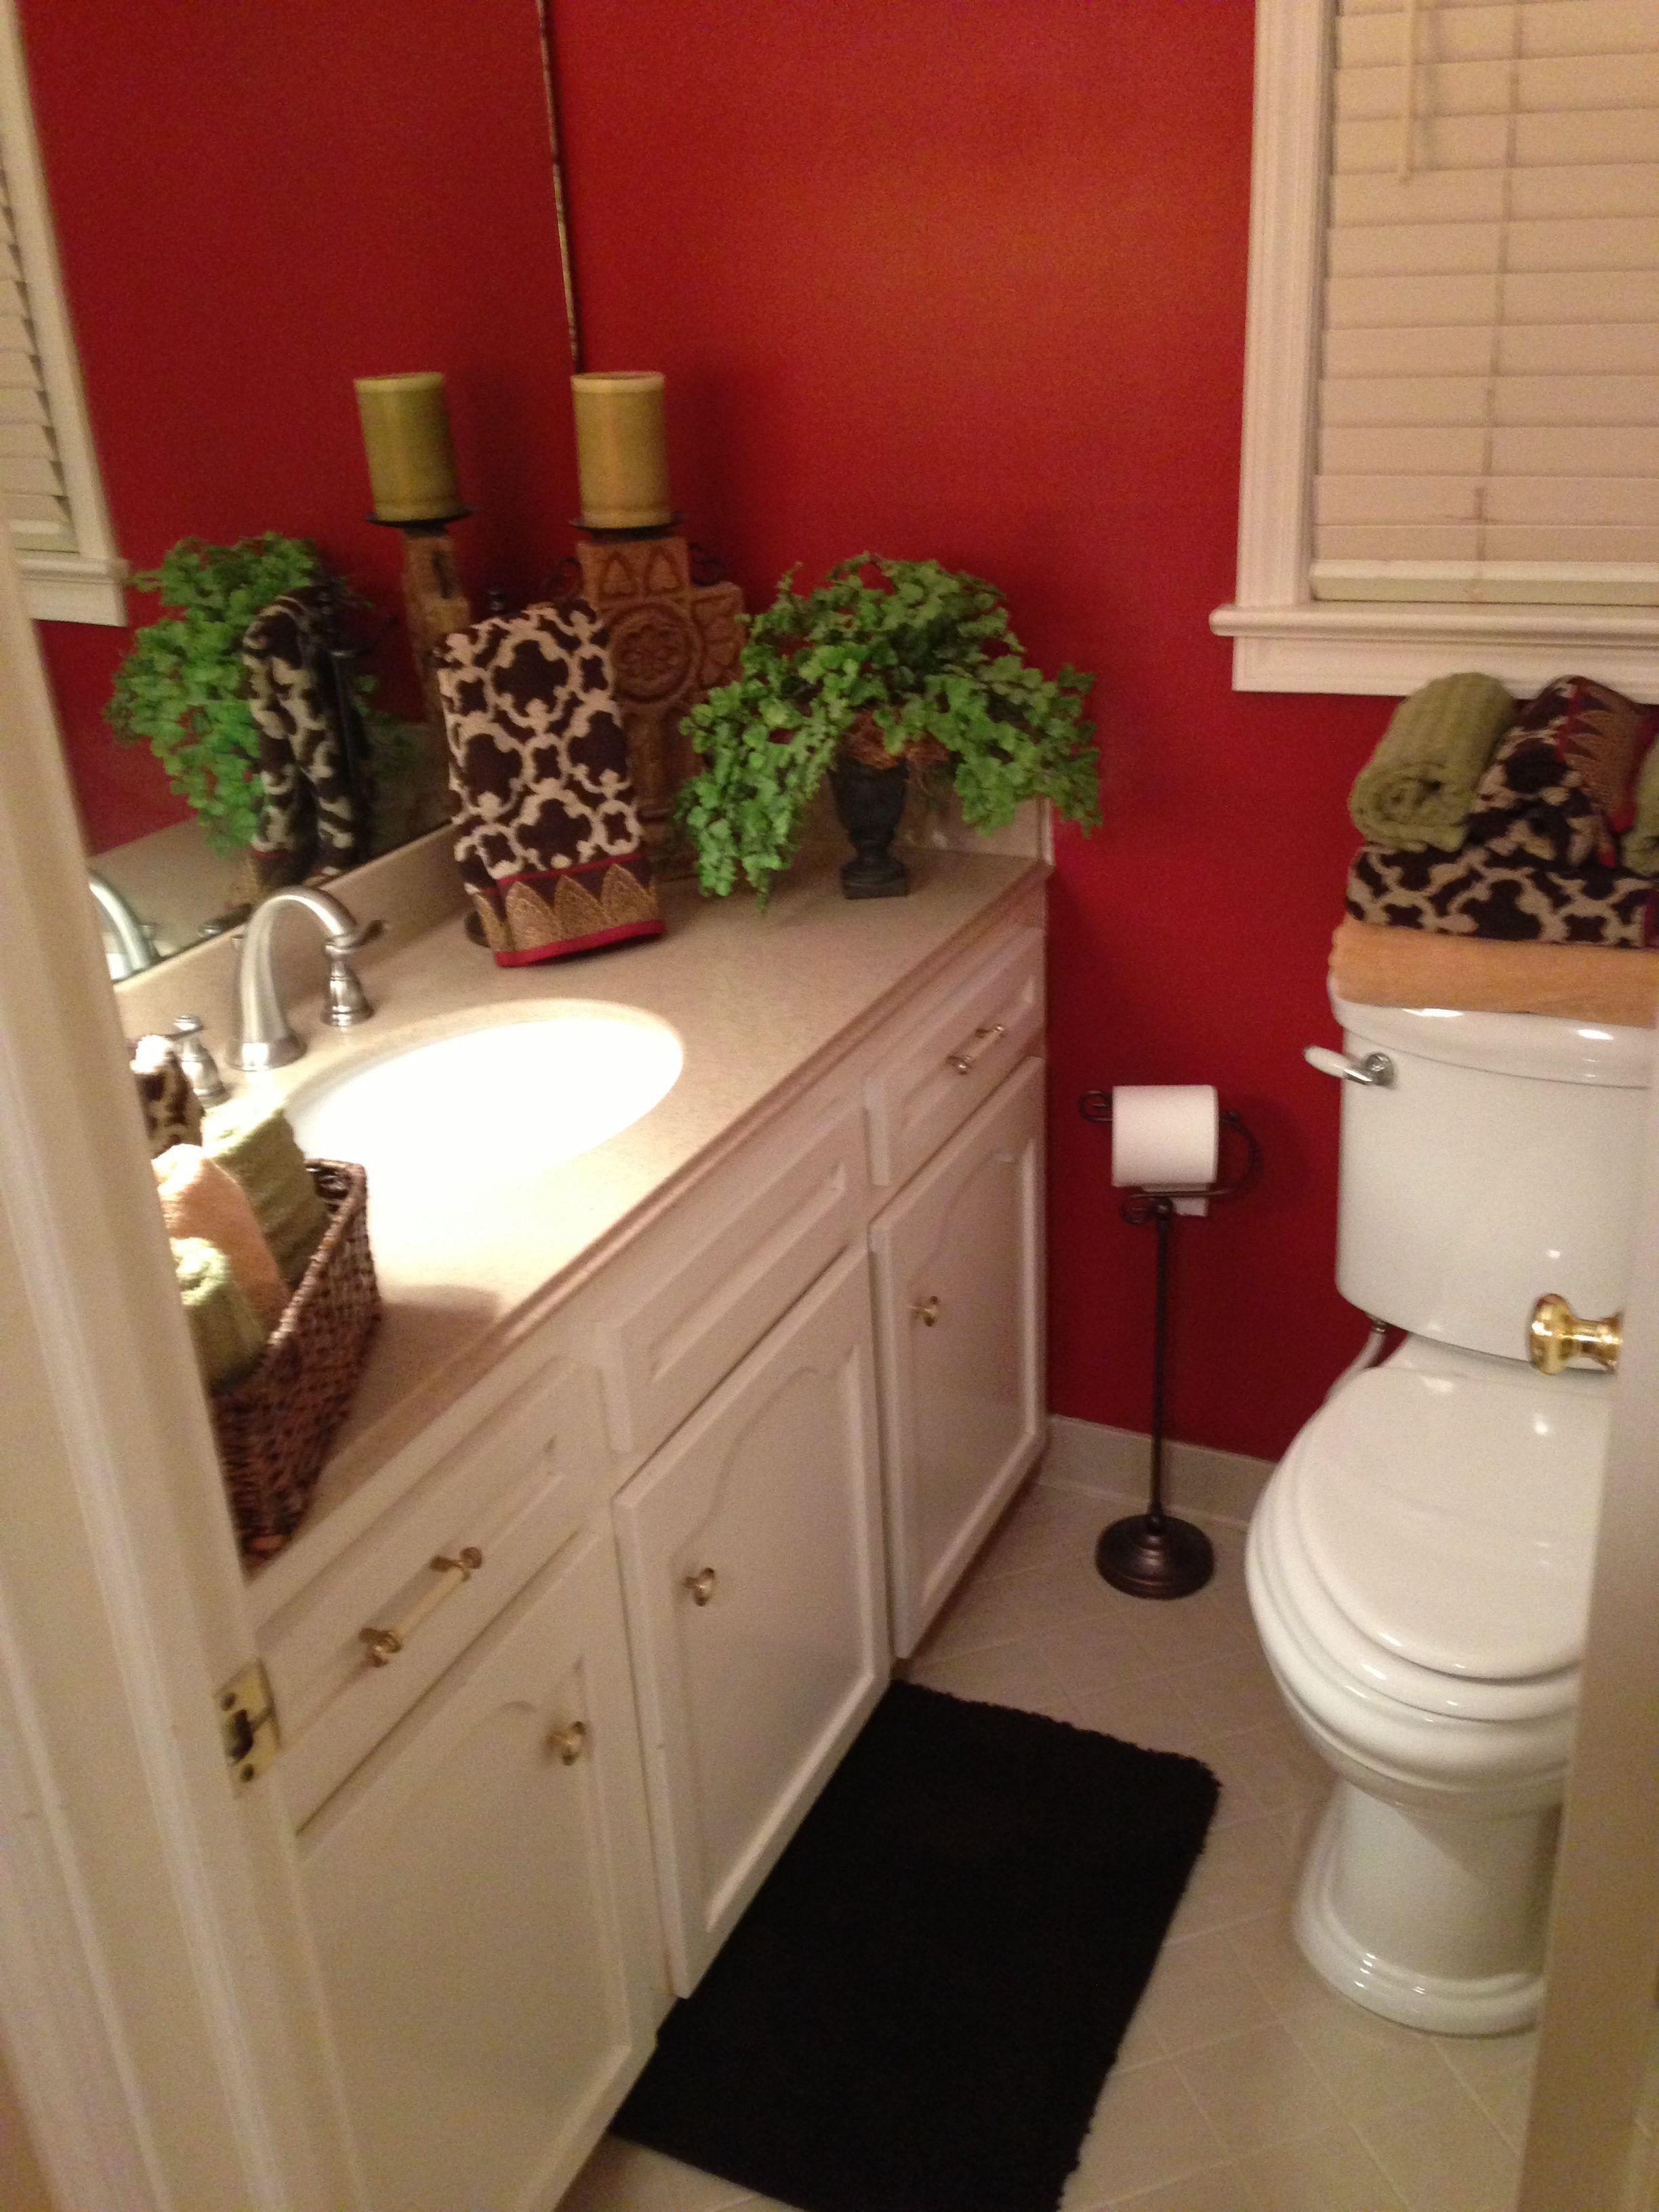 Small Bathroom Decorations My Style Brown Bathroom Decor Red With